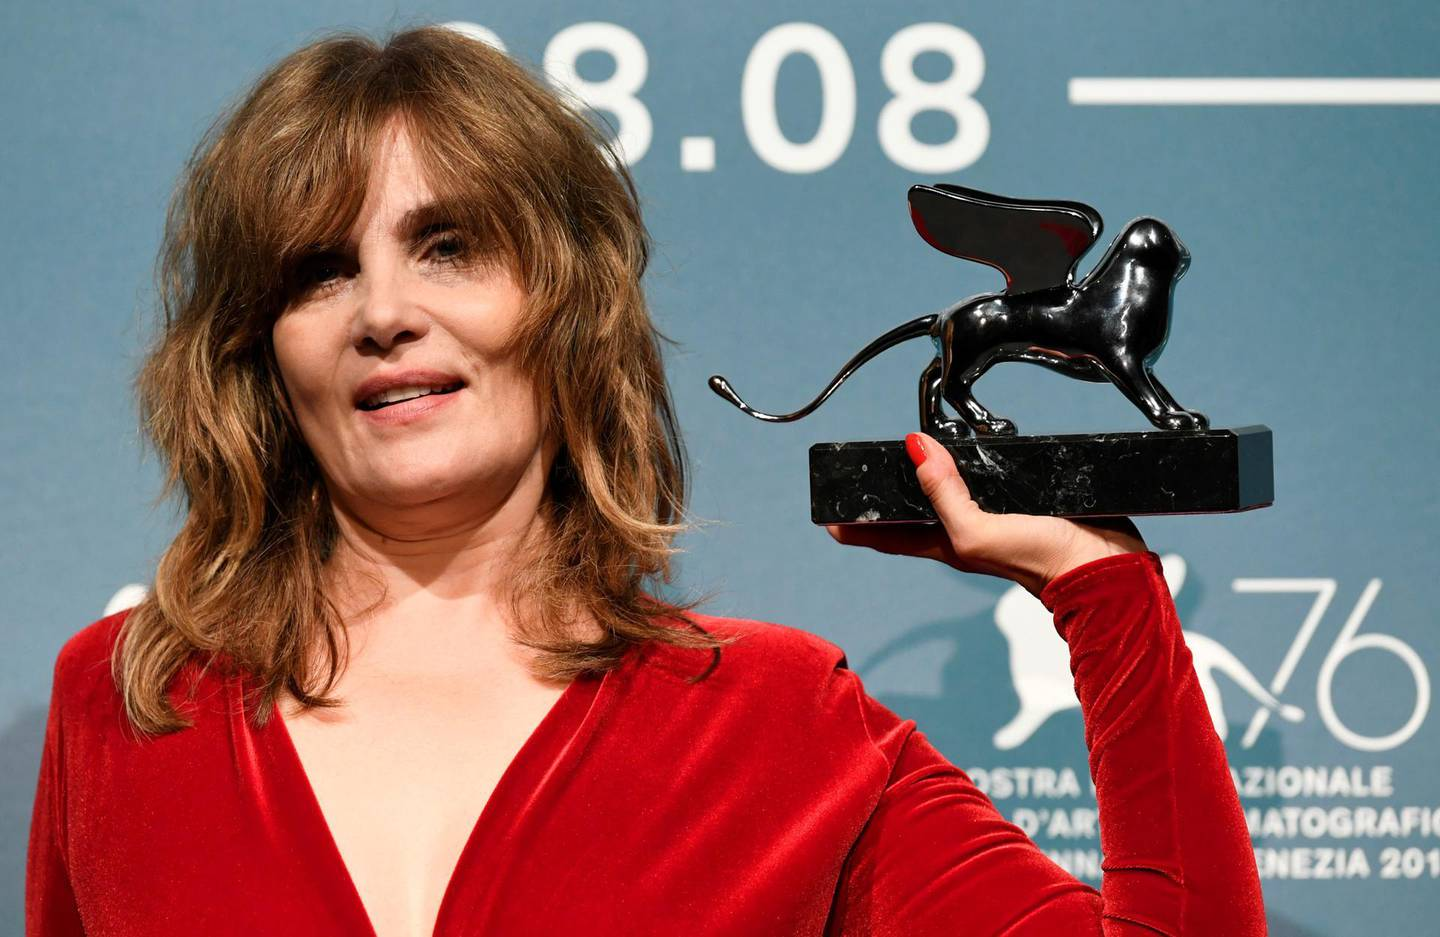 The 76th Venice Film Festival - Awards Ceremony - Venice, Italy, September 7, 2019 - Emmanuelle Seigner poses with the Silver Lion award - Grand Jury Prize. REUTERS/Piroschka van de Wouw